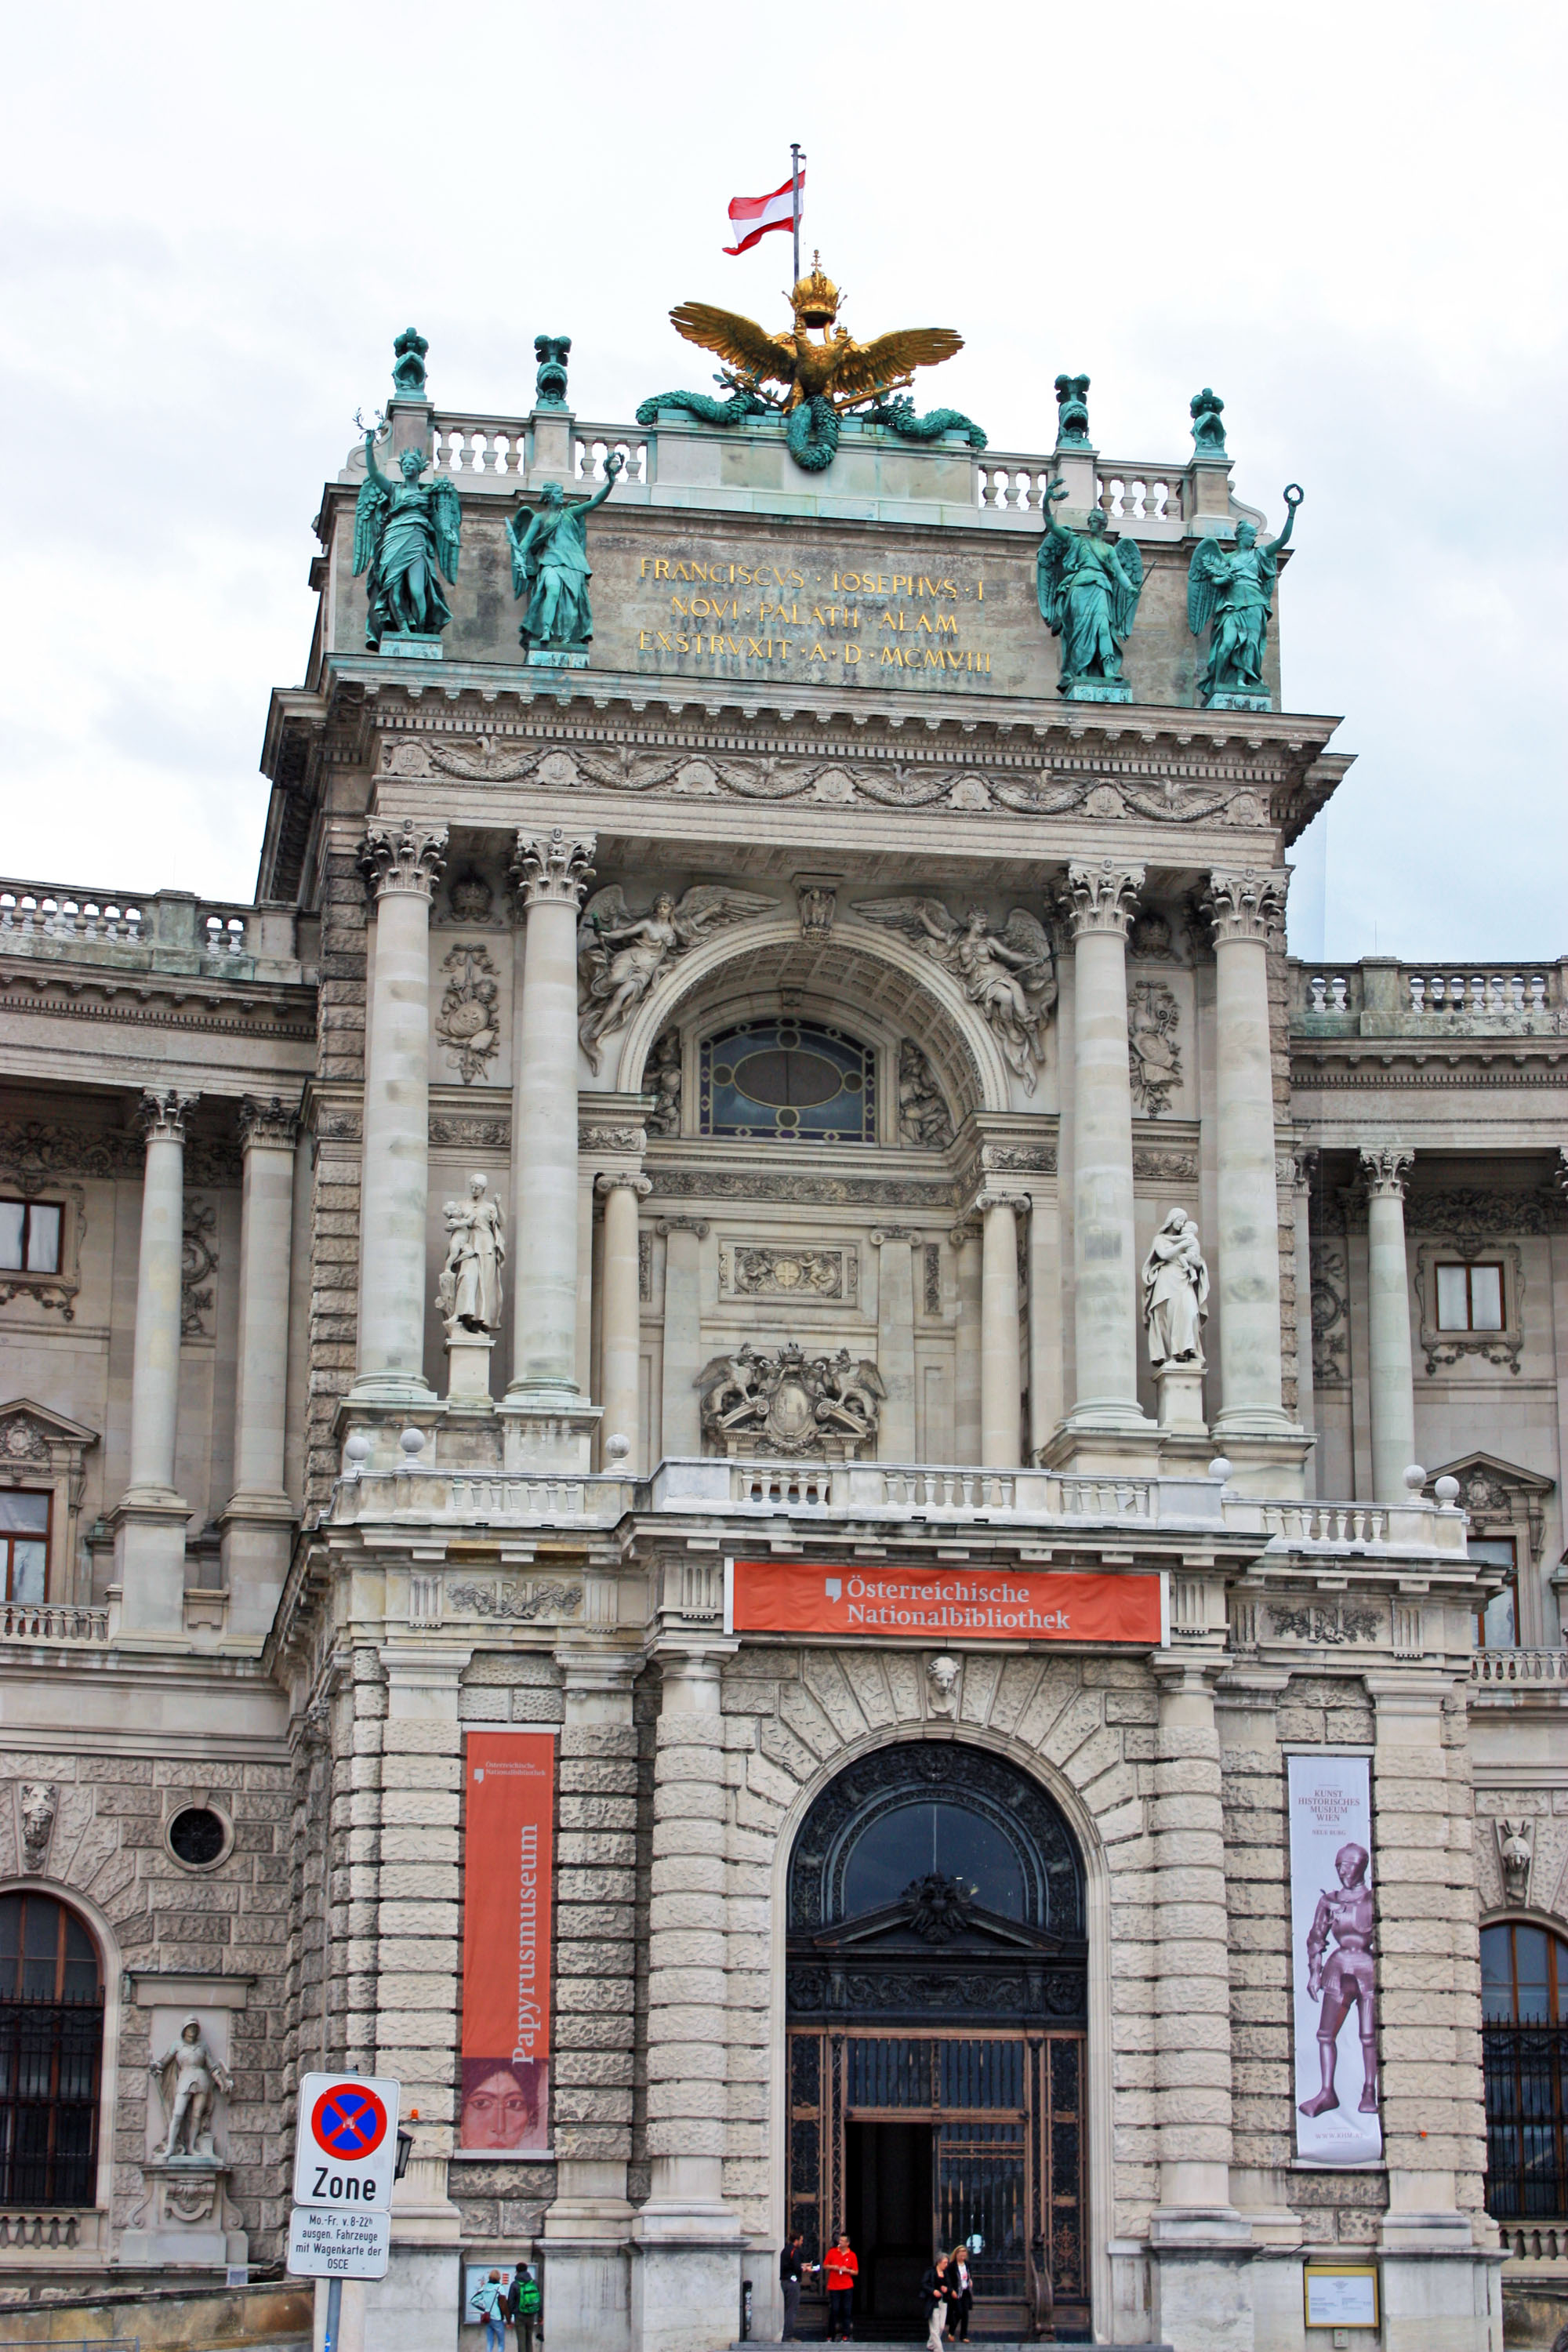 The entrance to the Austrian National Library.